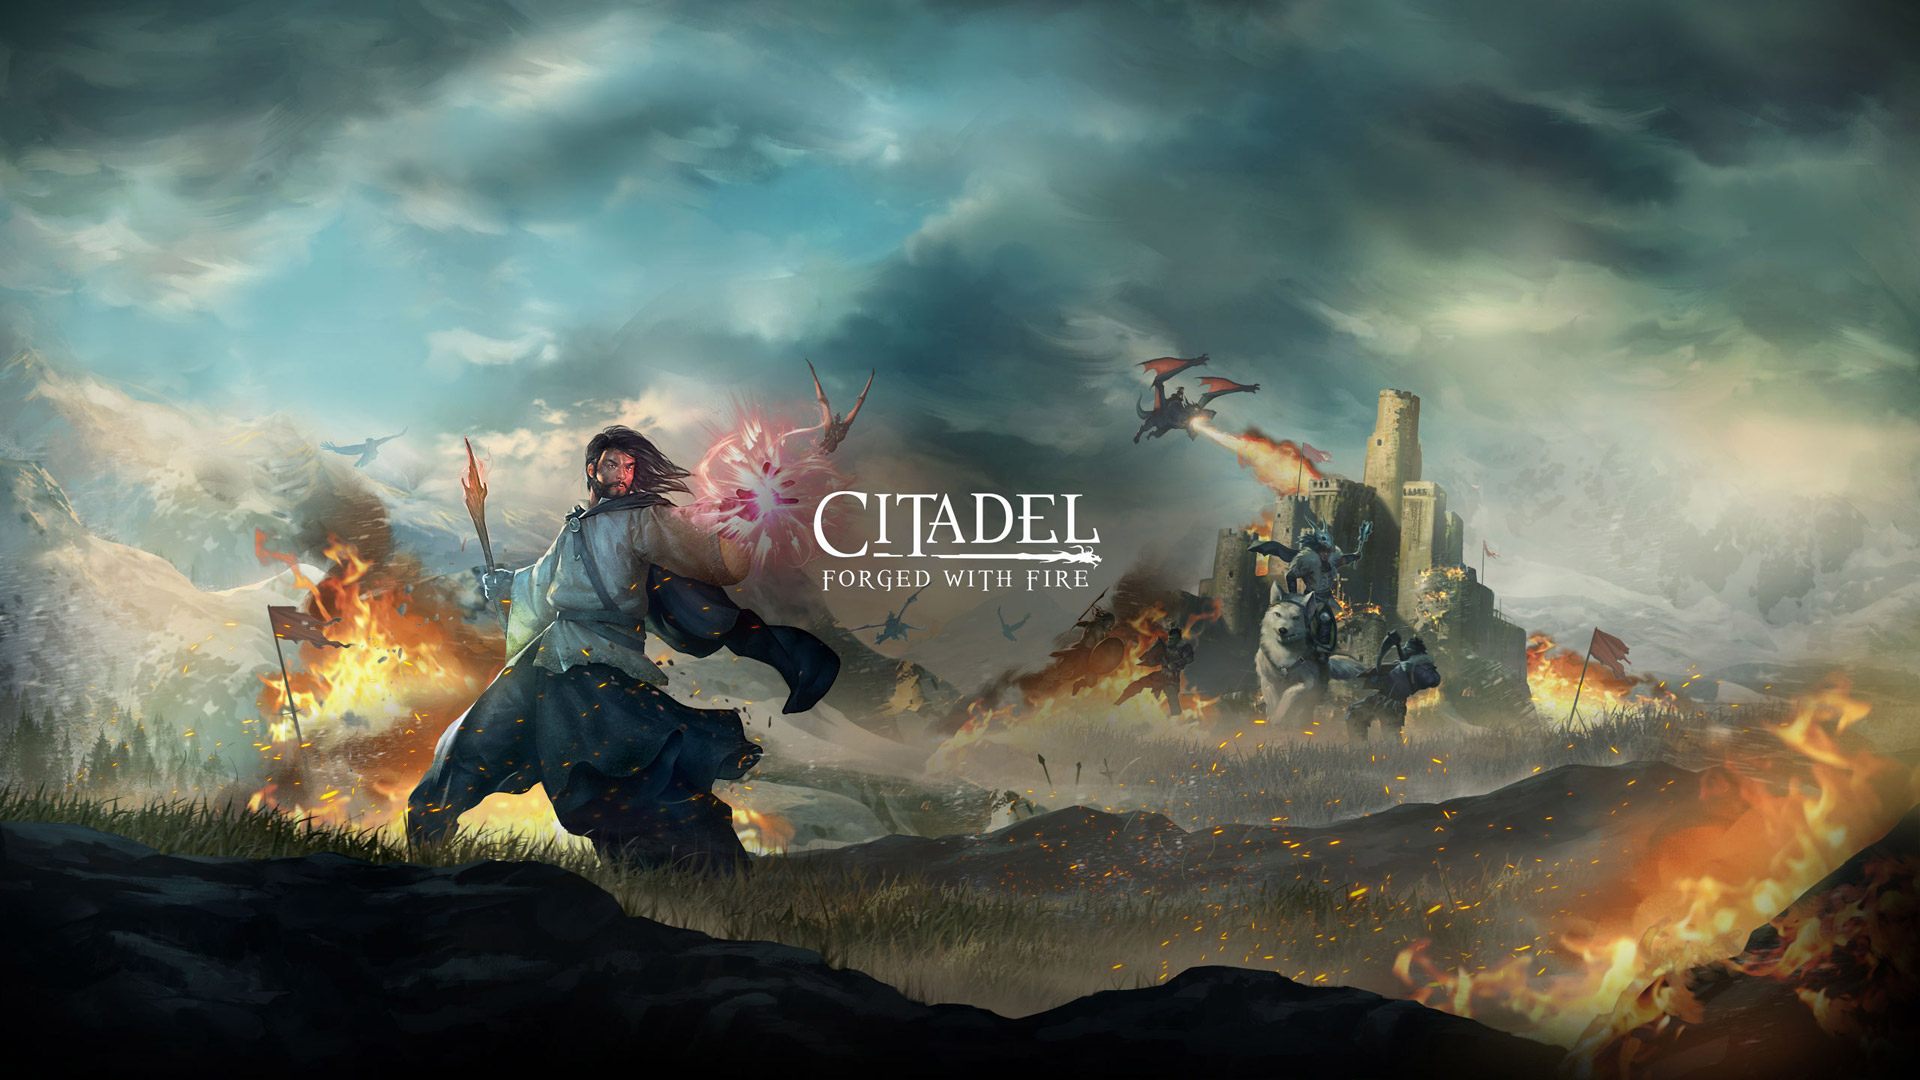 Citadel: Forged With Fire Wallpaper in 1920x1080